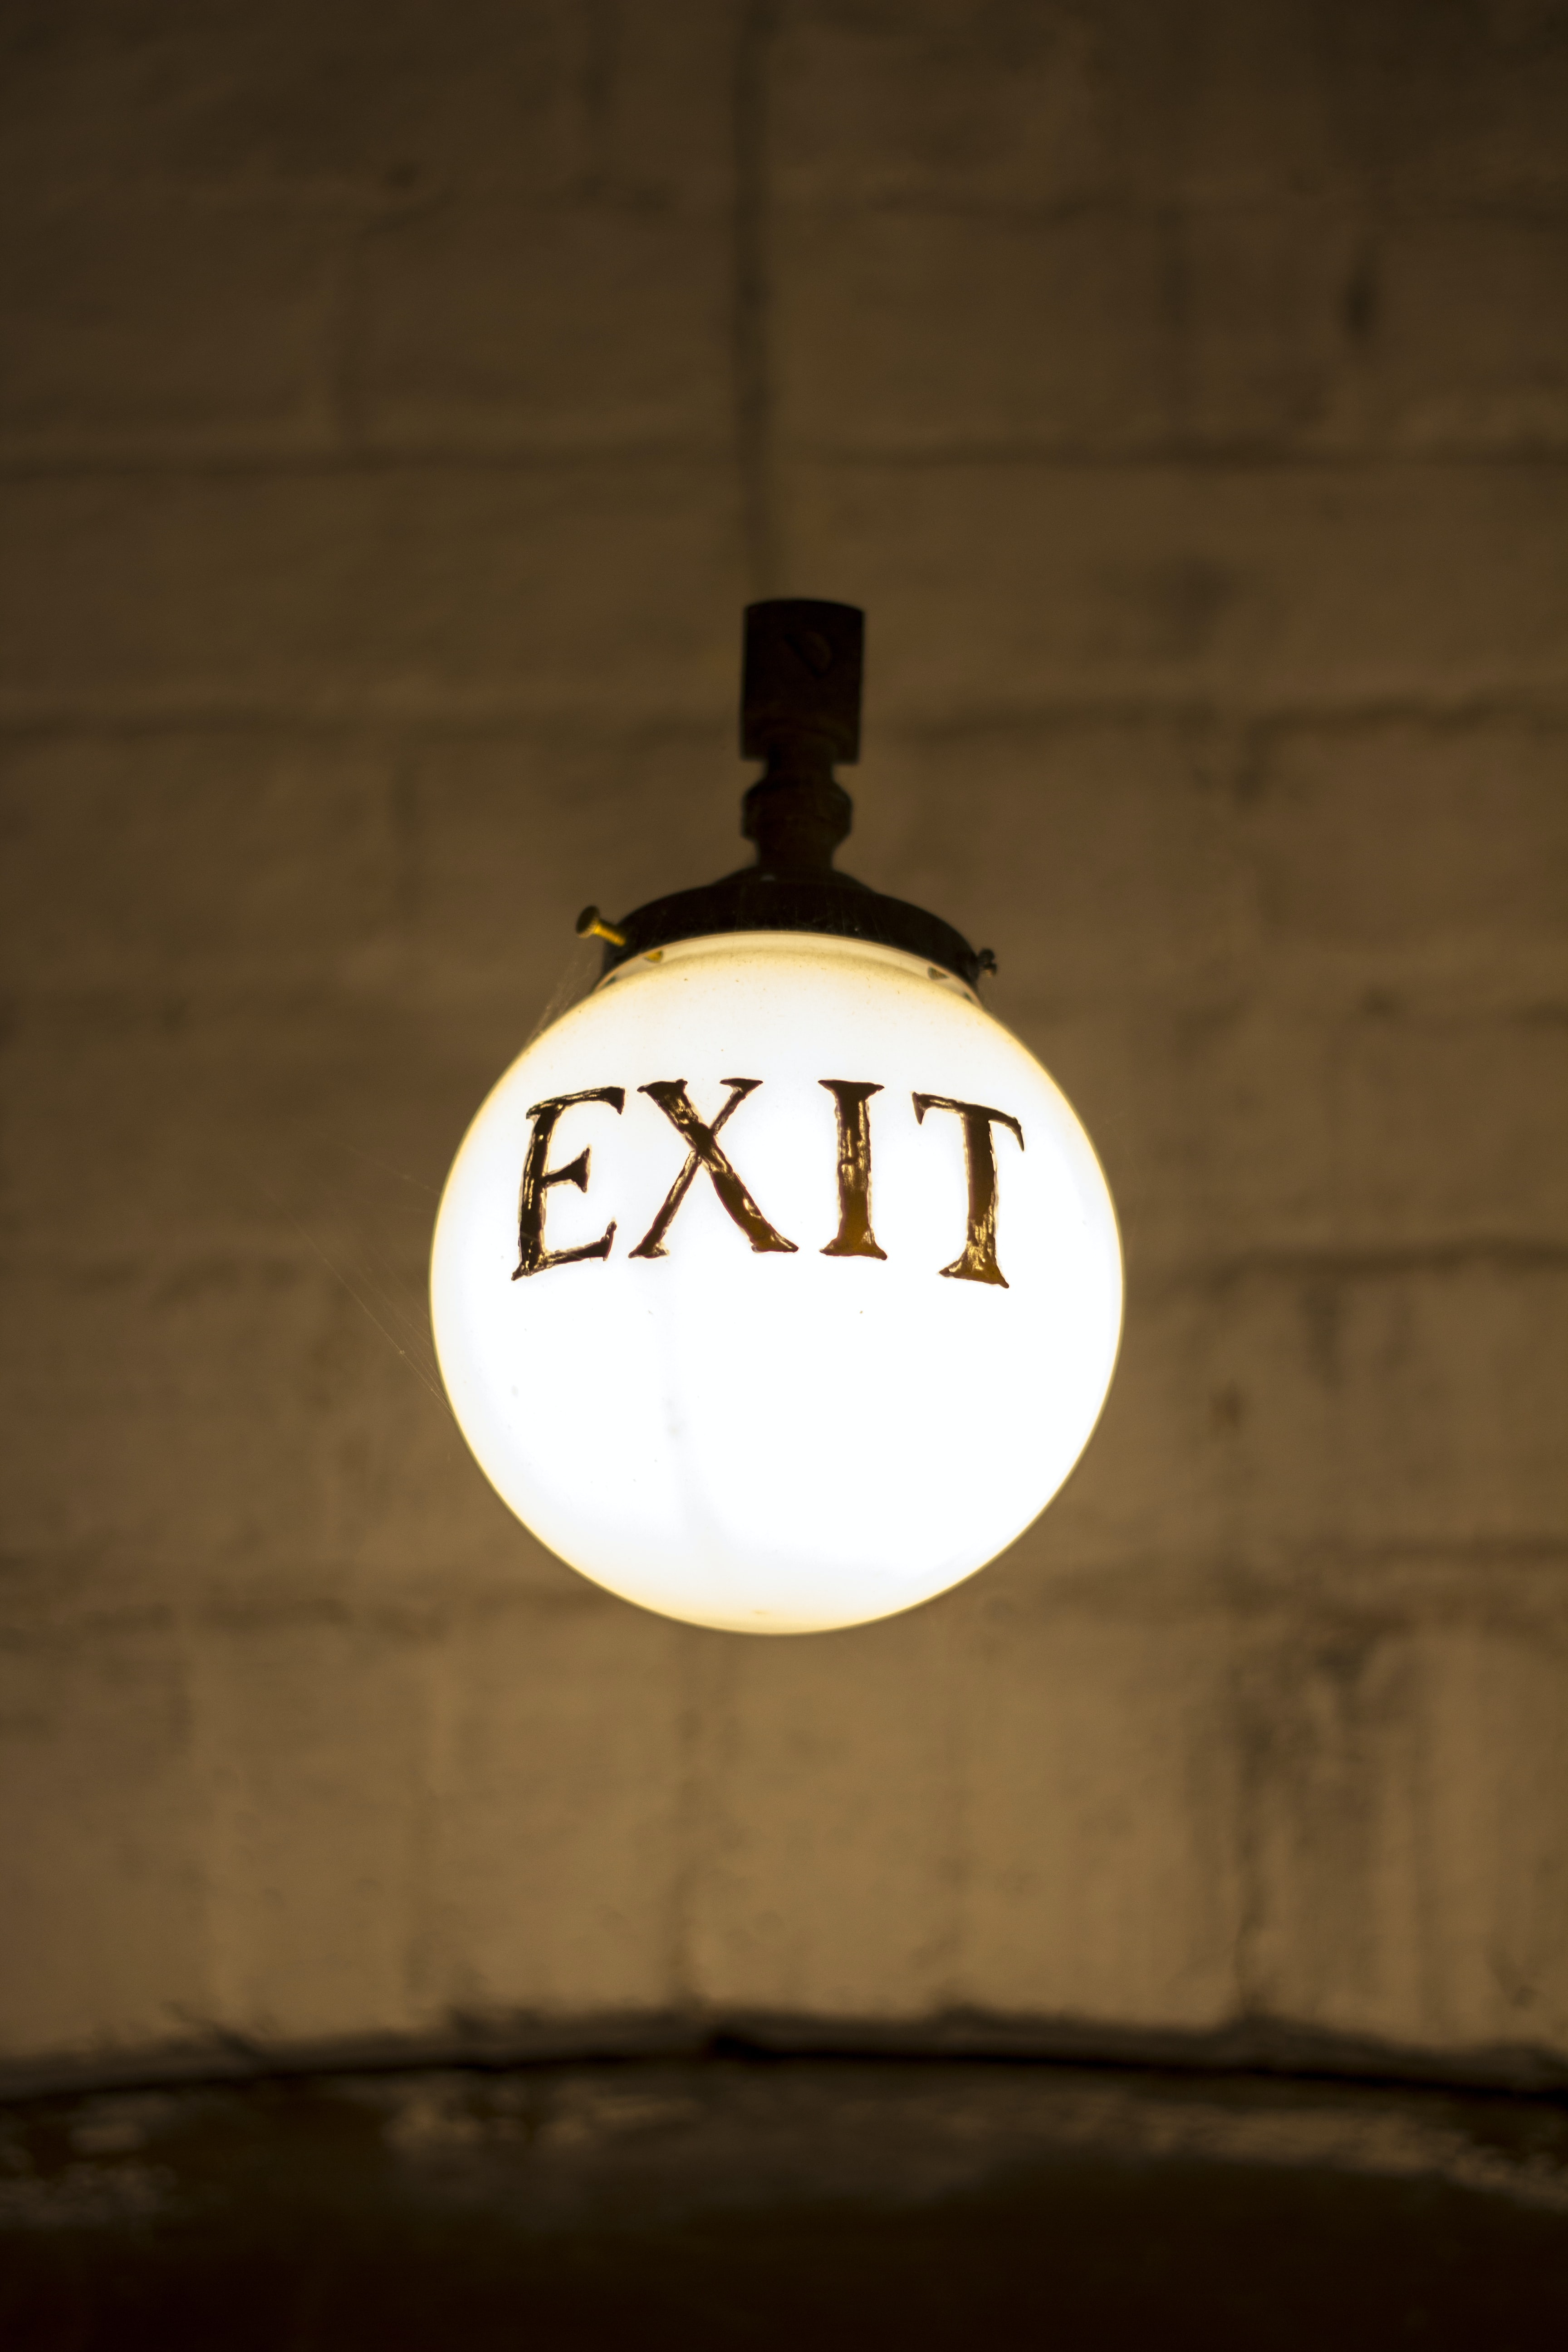 closeup photography of white hanging bulb light with exit signage